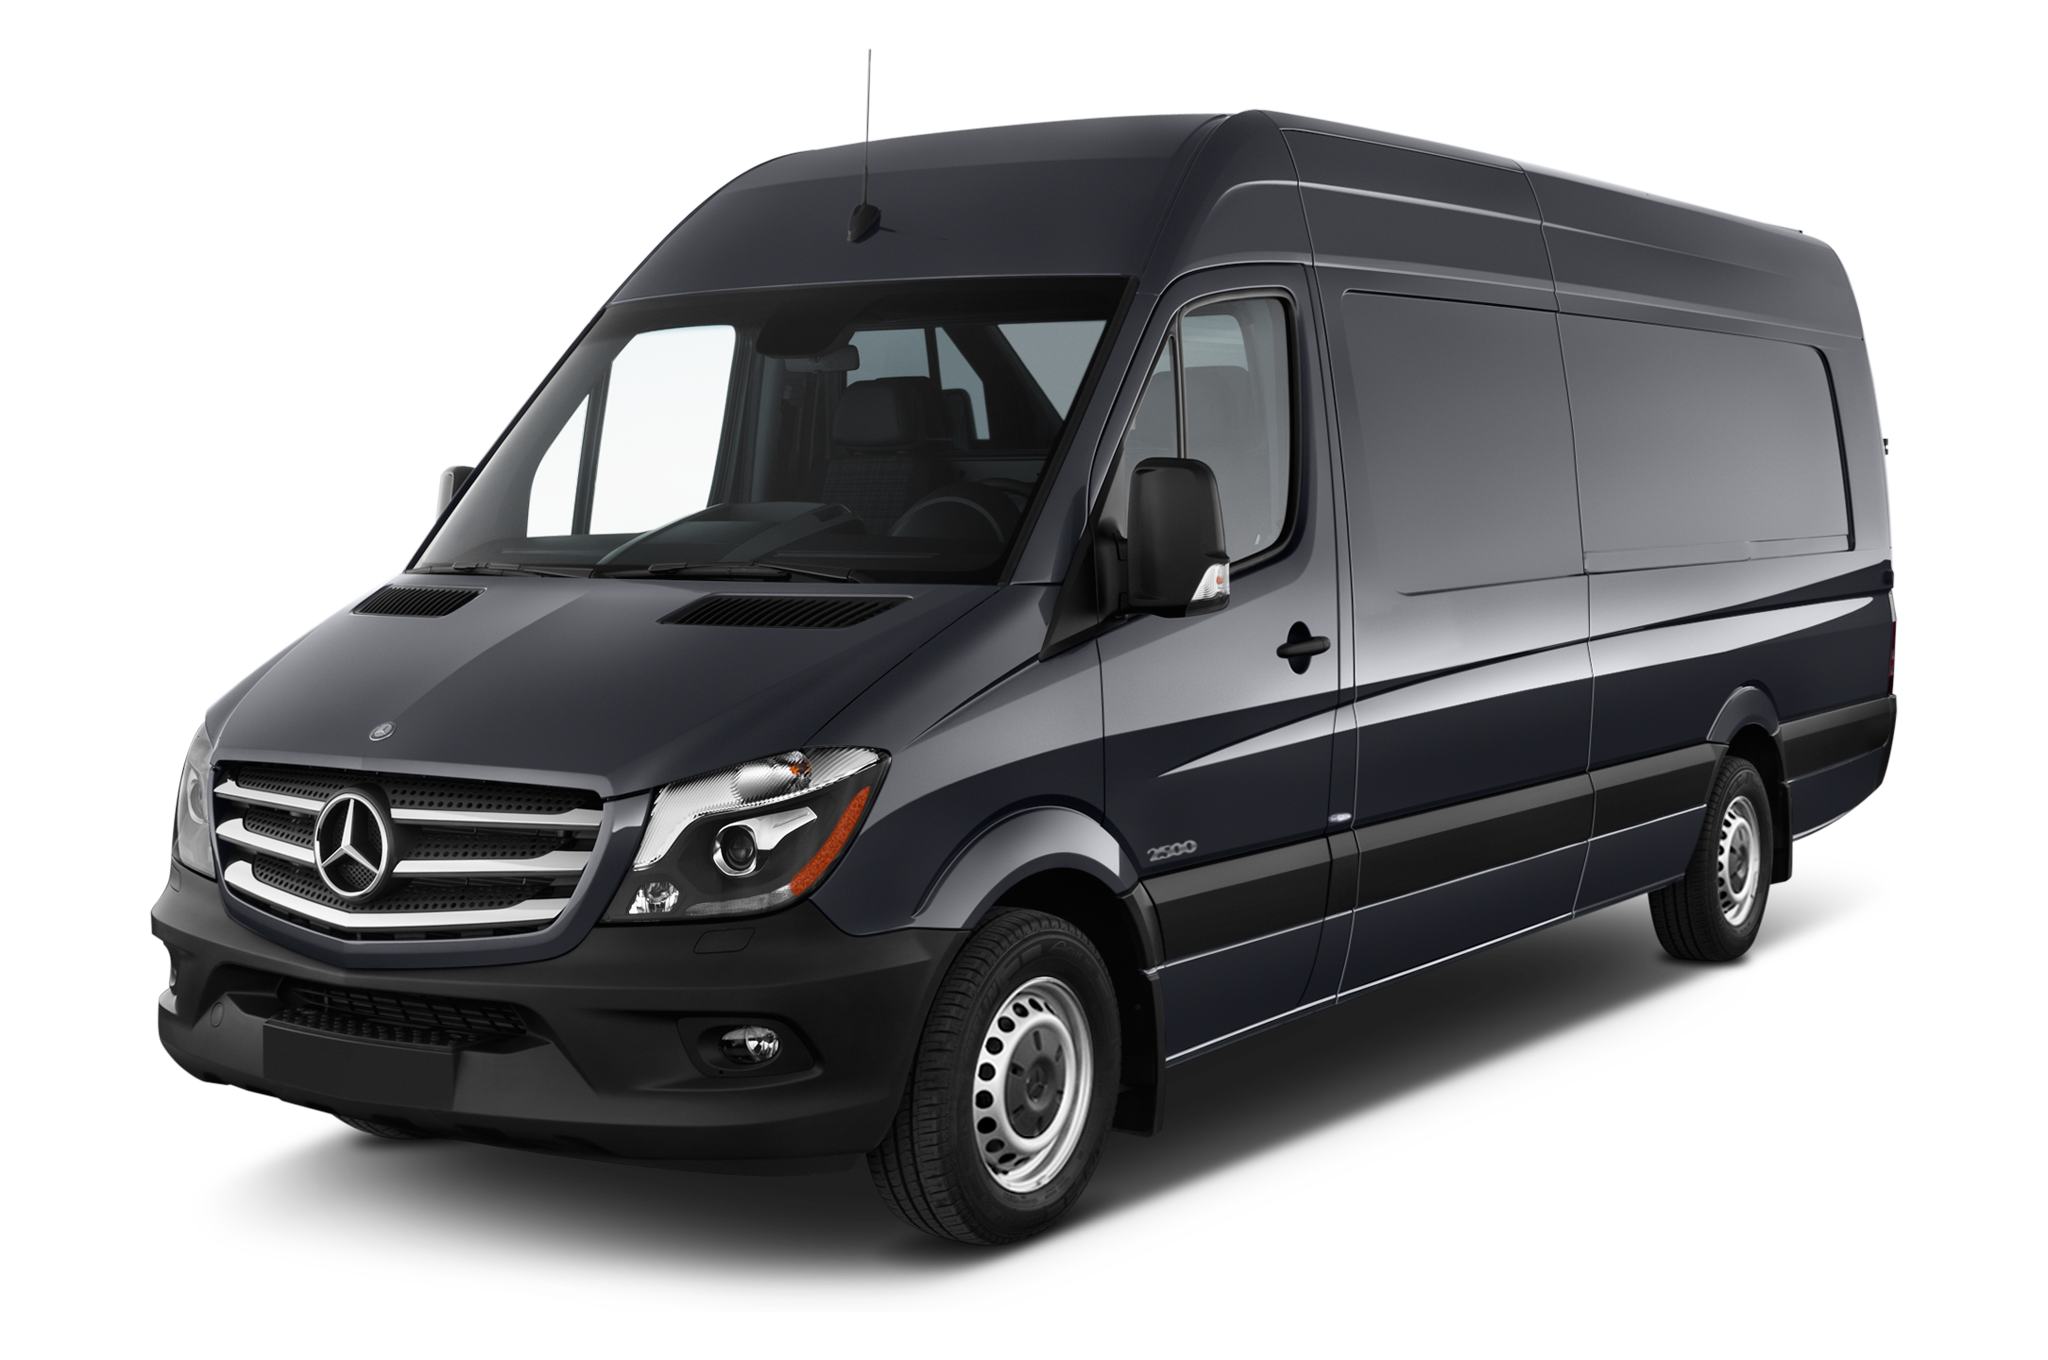 Minibus Hire With Driver Services For Any Occasion At Cheap Prices Empire Coaches With Cheap Minibus Hire Provi Town Car Service Cargo Vans For Sale Cargo Van